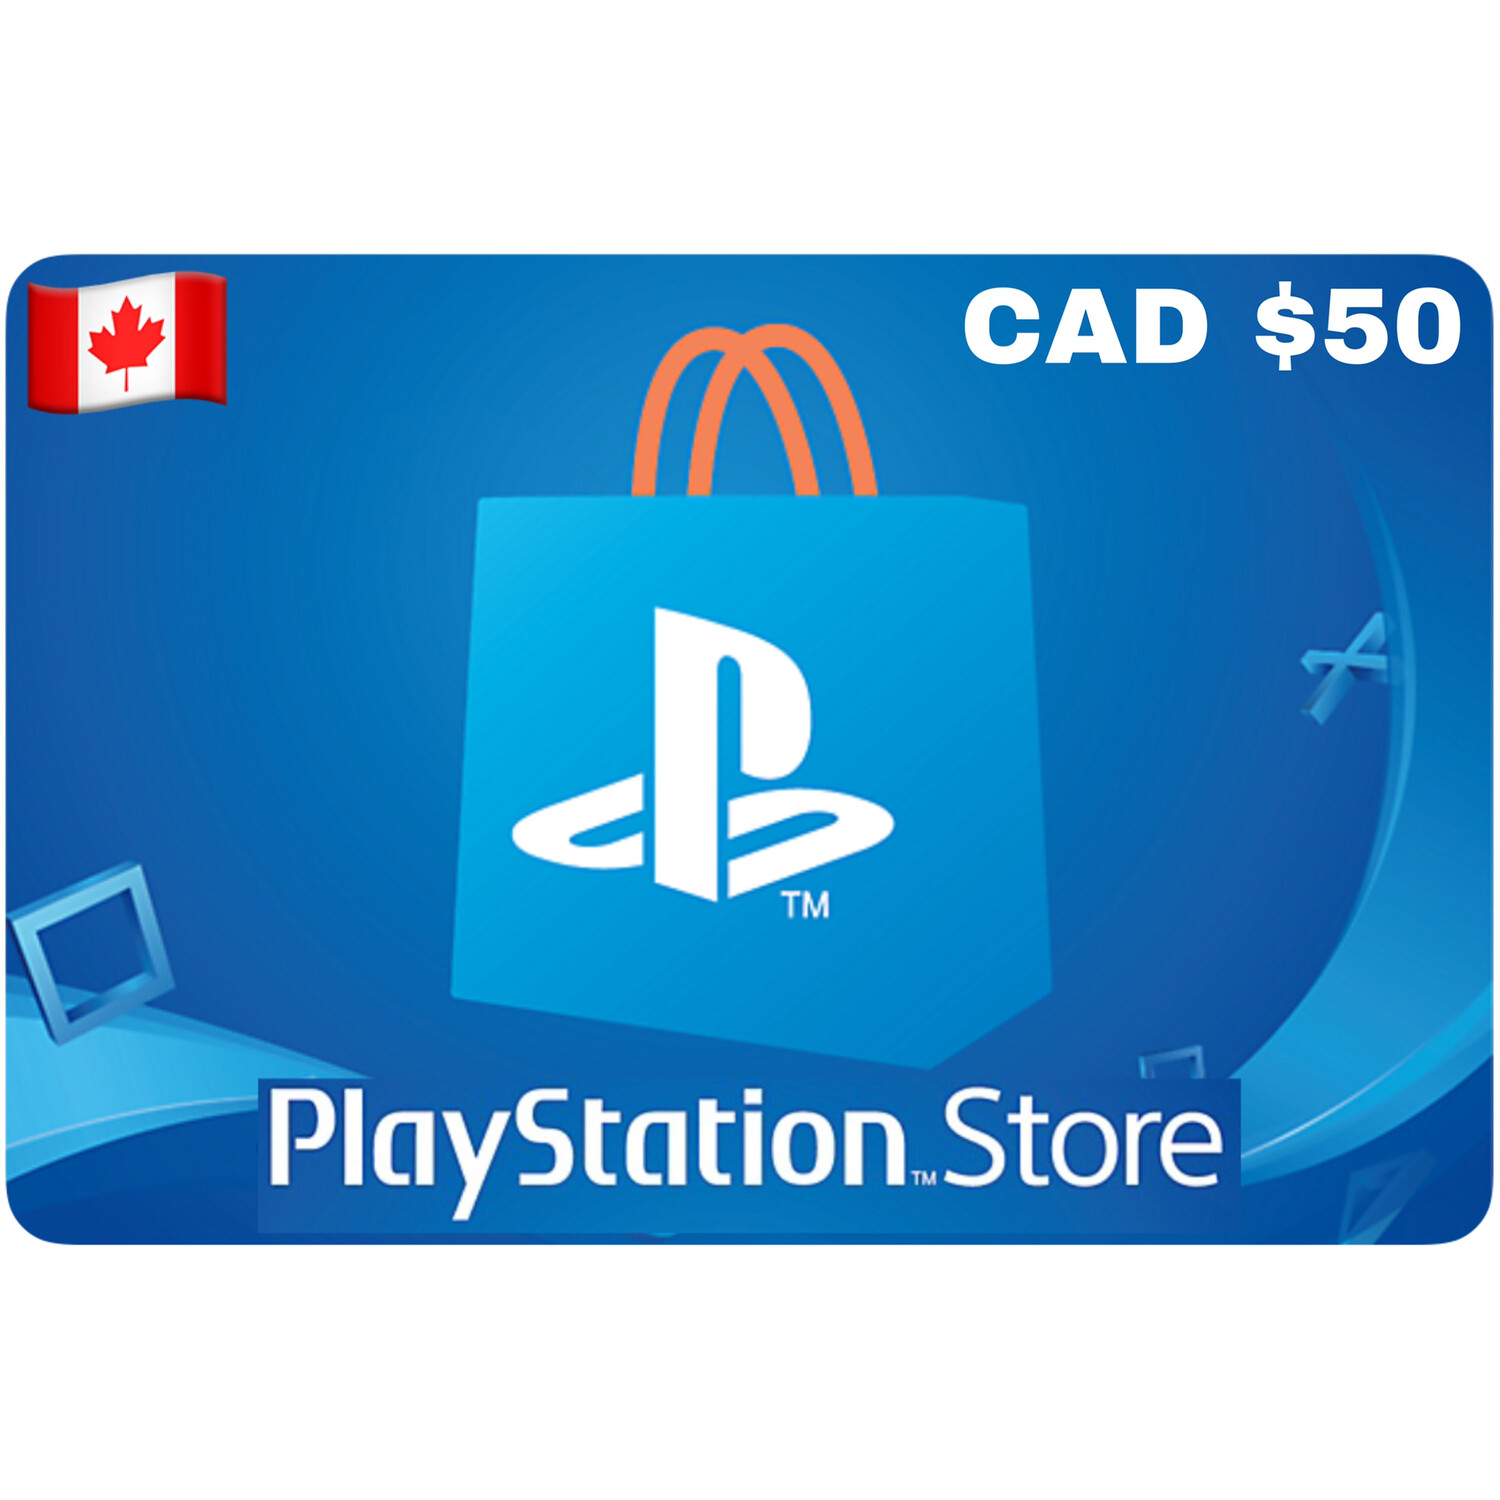 Playstation Store Gift Card Canada $50